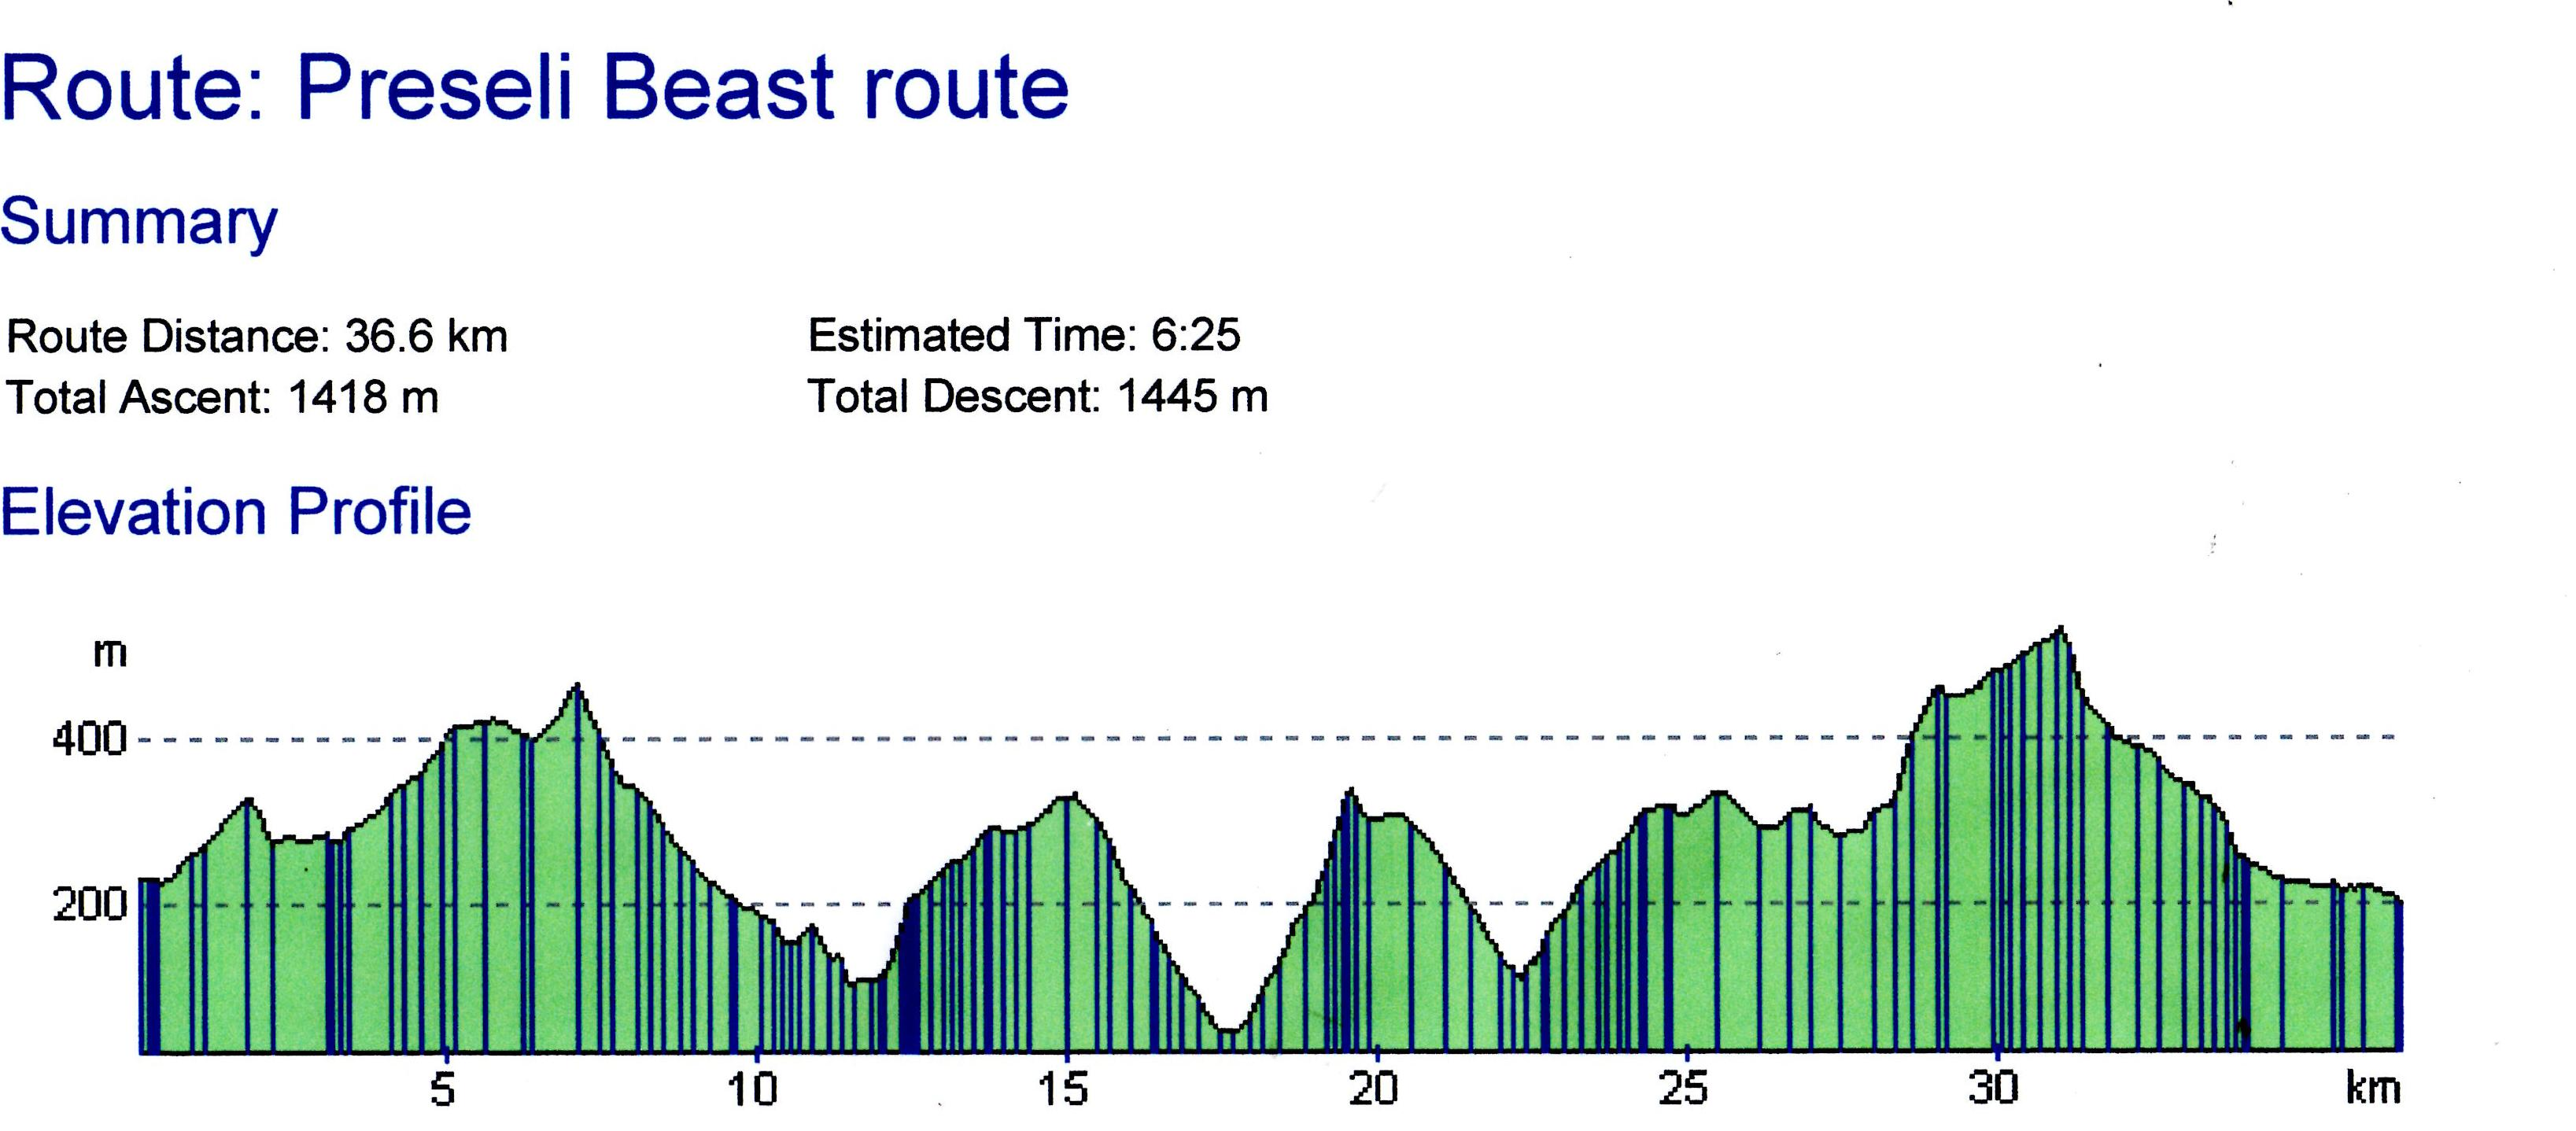 Preseli Beast Route Distance and Elevation Profile